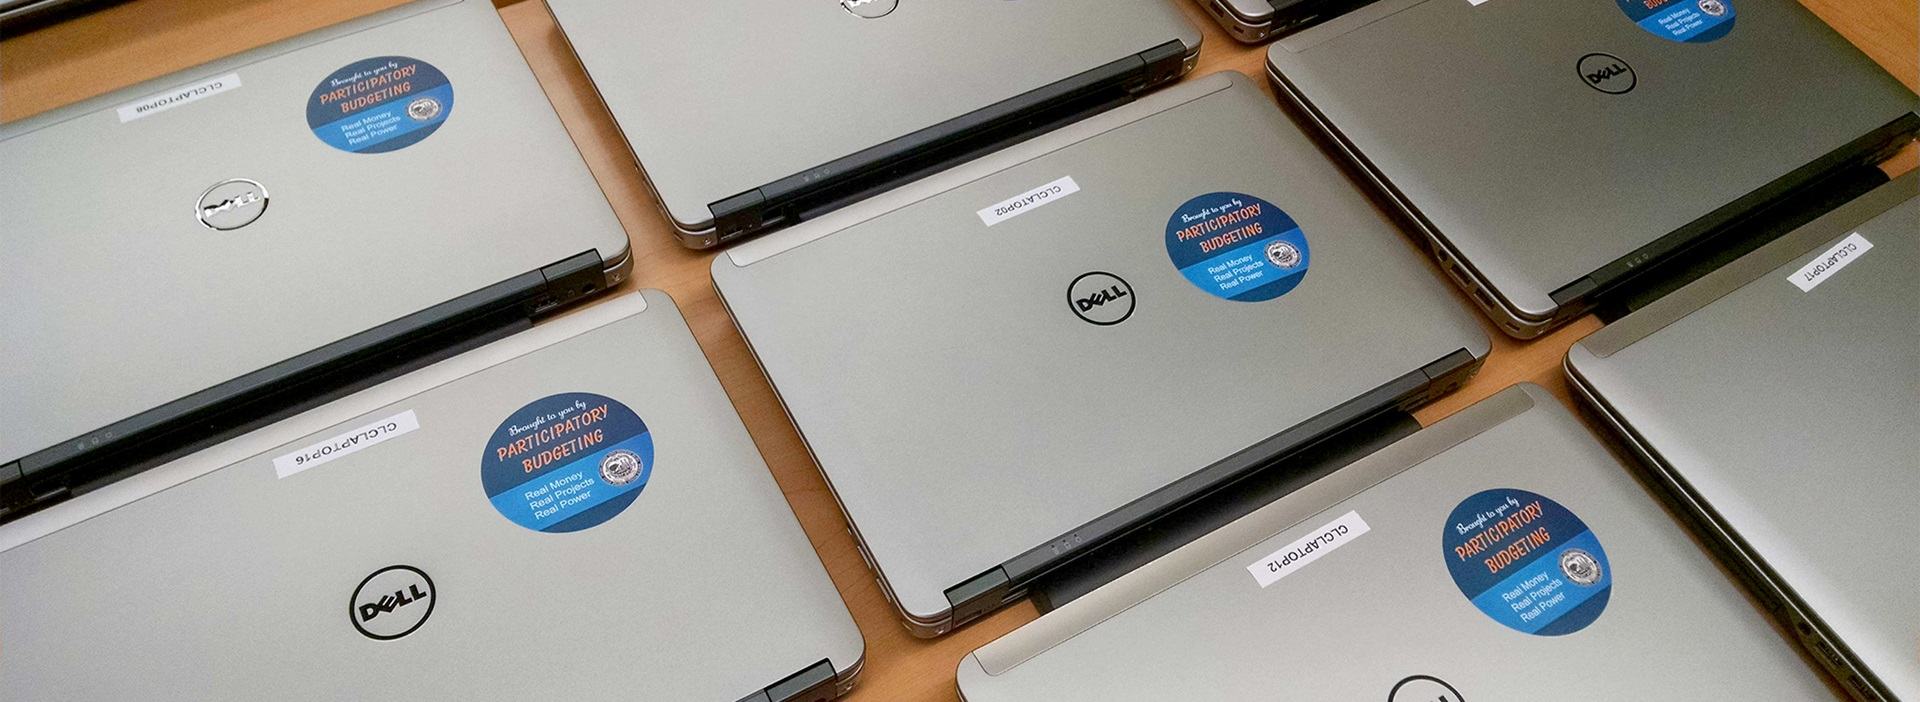 Photo of laptops purchased with Participatory Budgeting funds